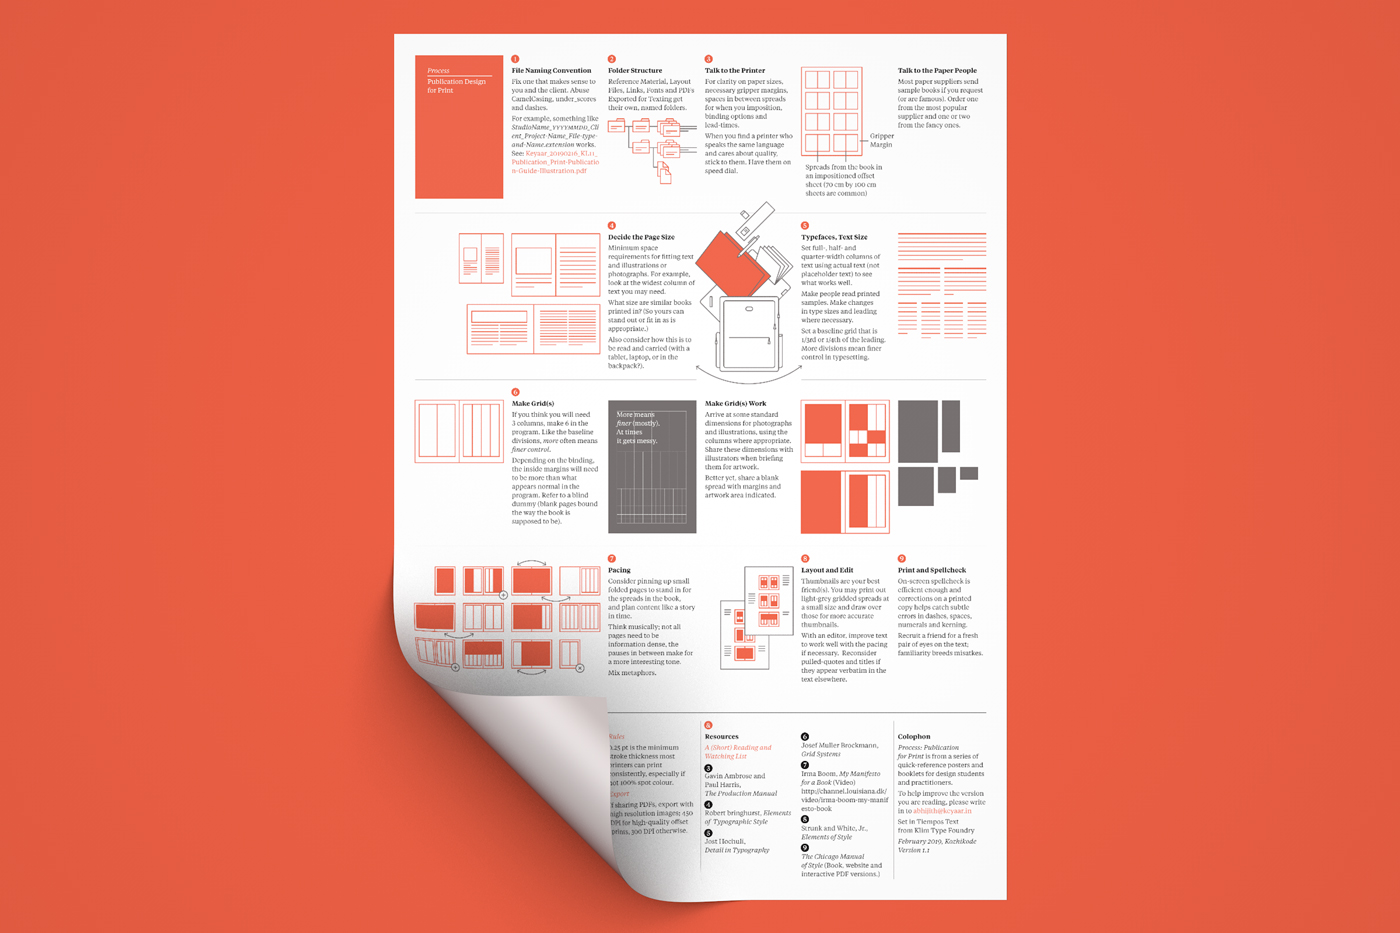 An overview of the publication design process. A3 sized poster format.